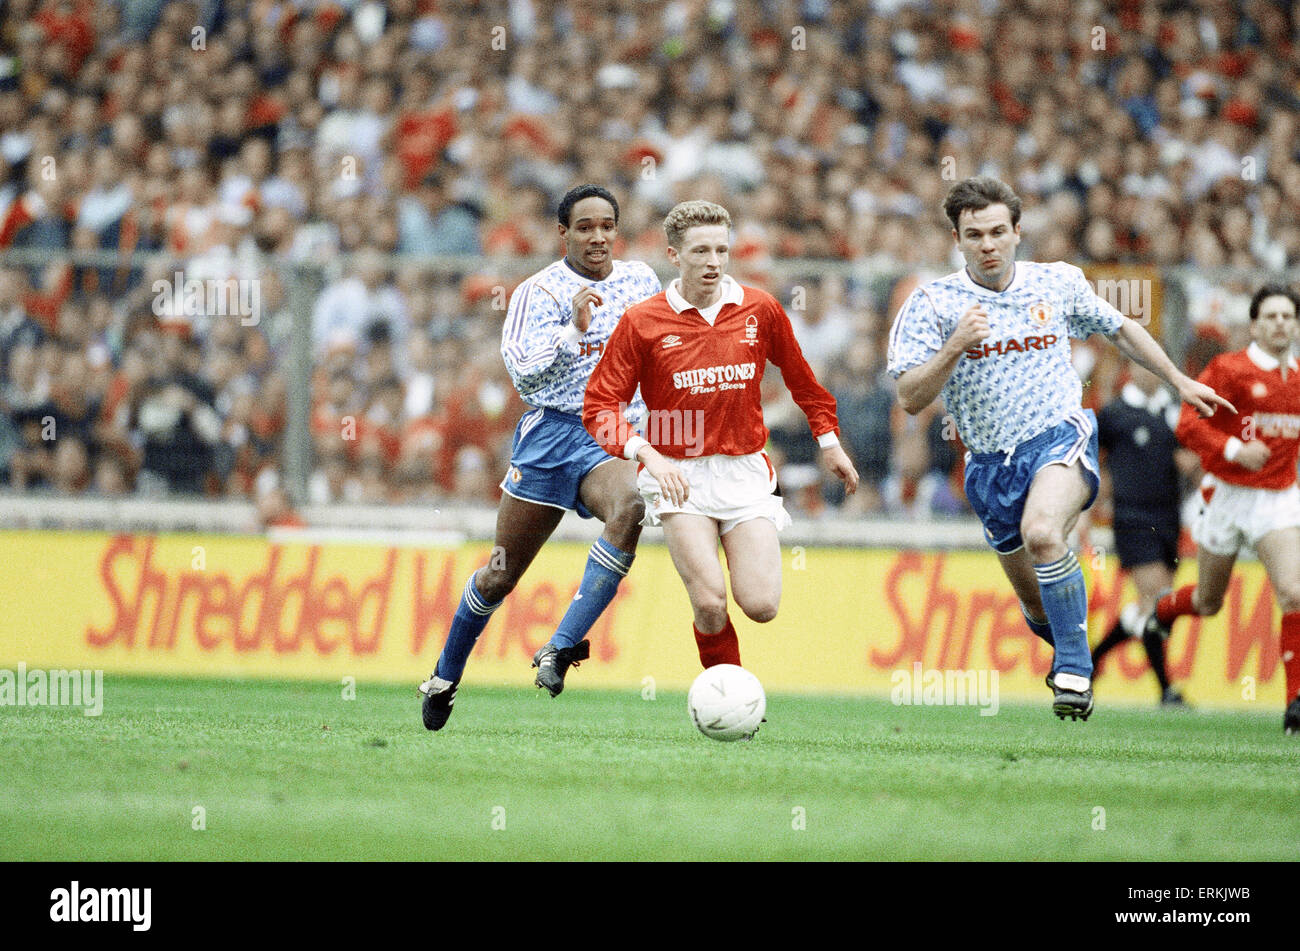 Rumbelows Cup Final at Wembley Stadium. Nottingham Forest 0 v Manchester United 1.  Scot Gemmill in possession with - Stock Image